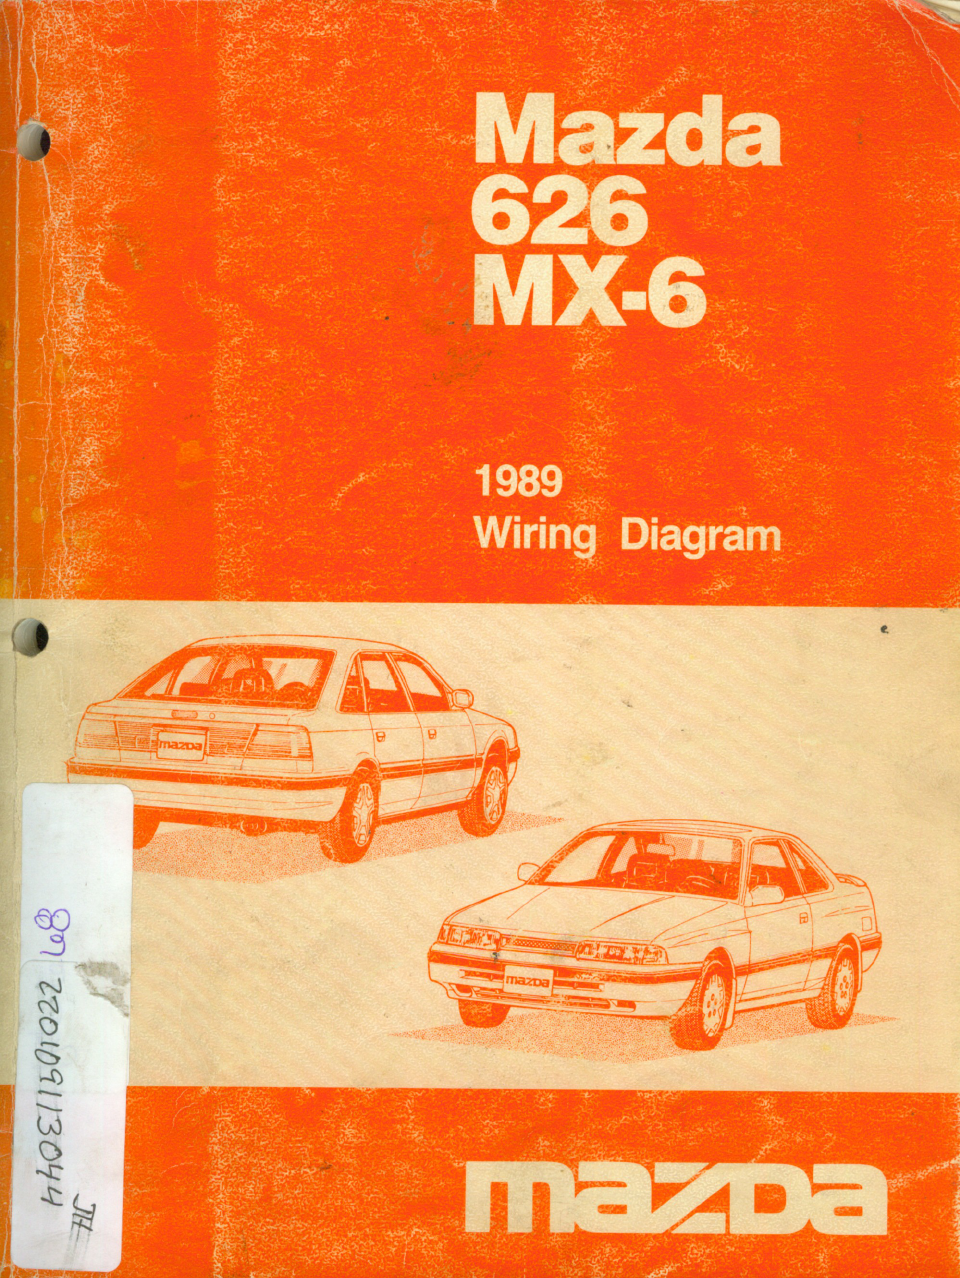 See our other Mazda 626 Manuals: